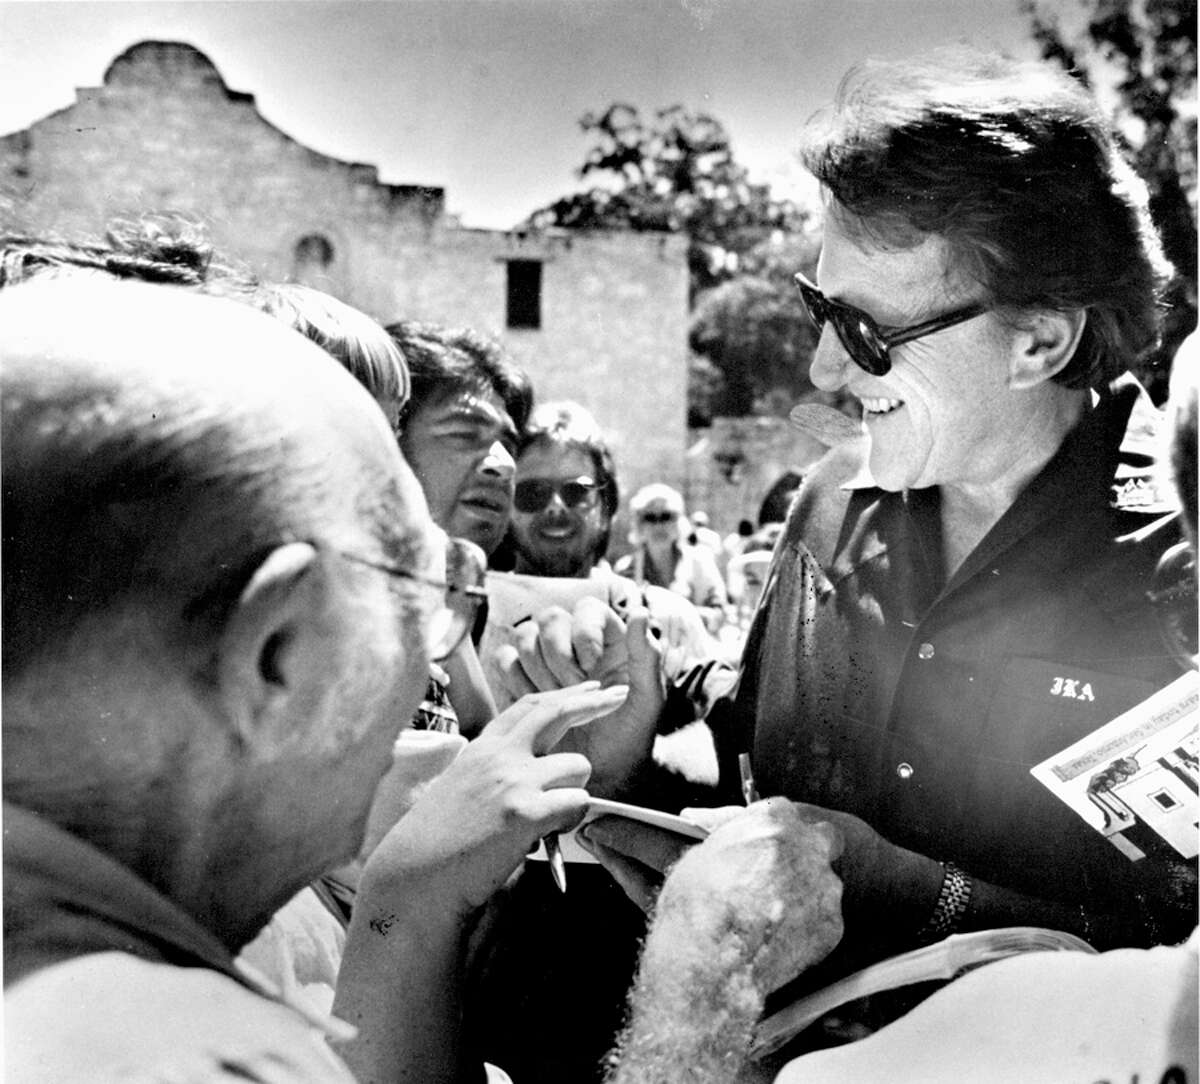 James Arness talks to fans in front of the Alamo. He played Jim Bowie in the TV movie